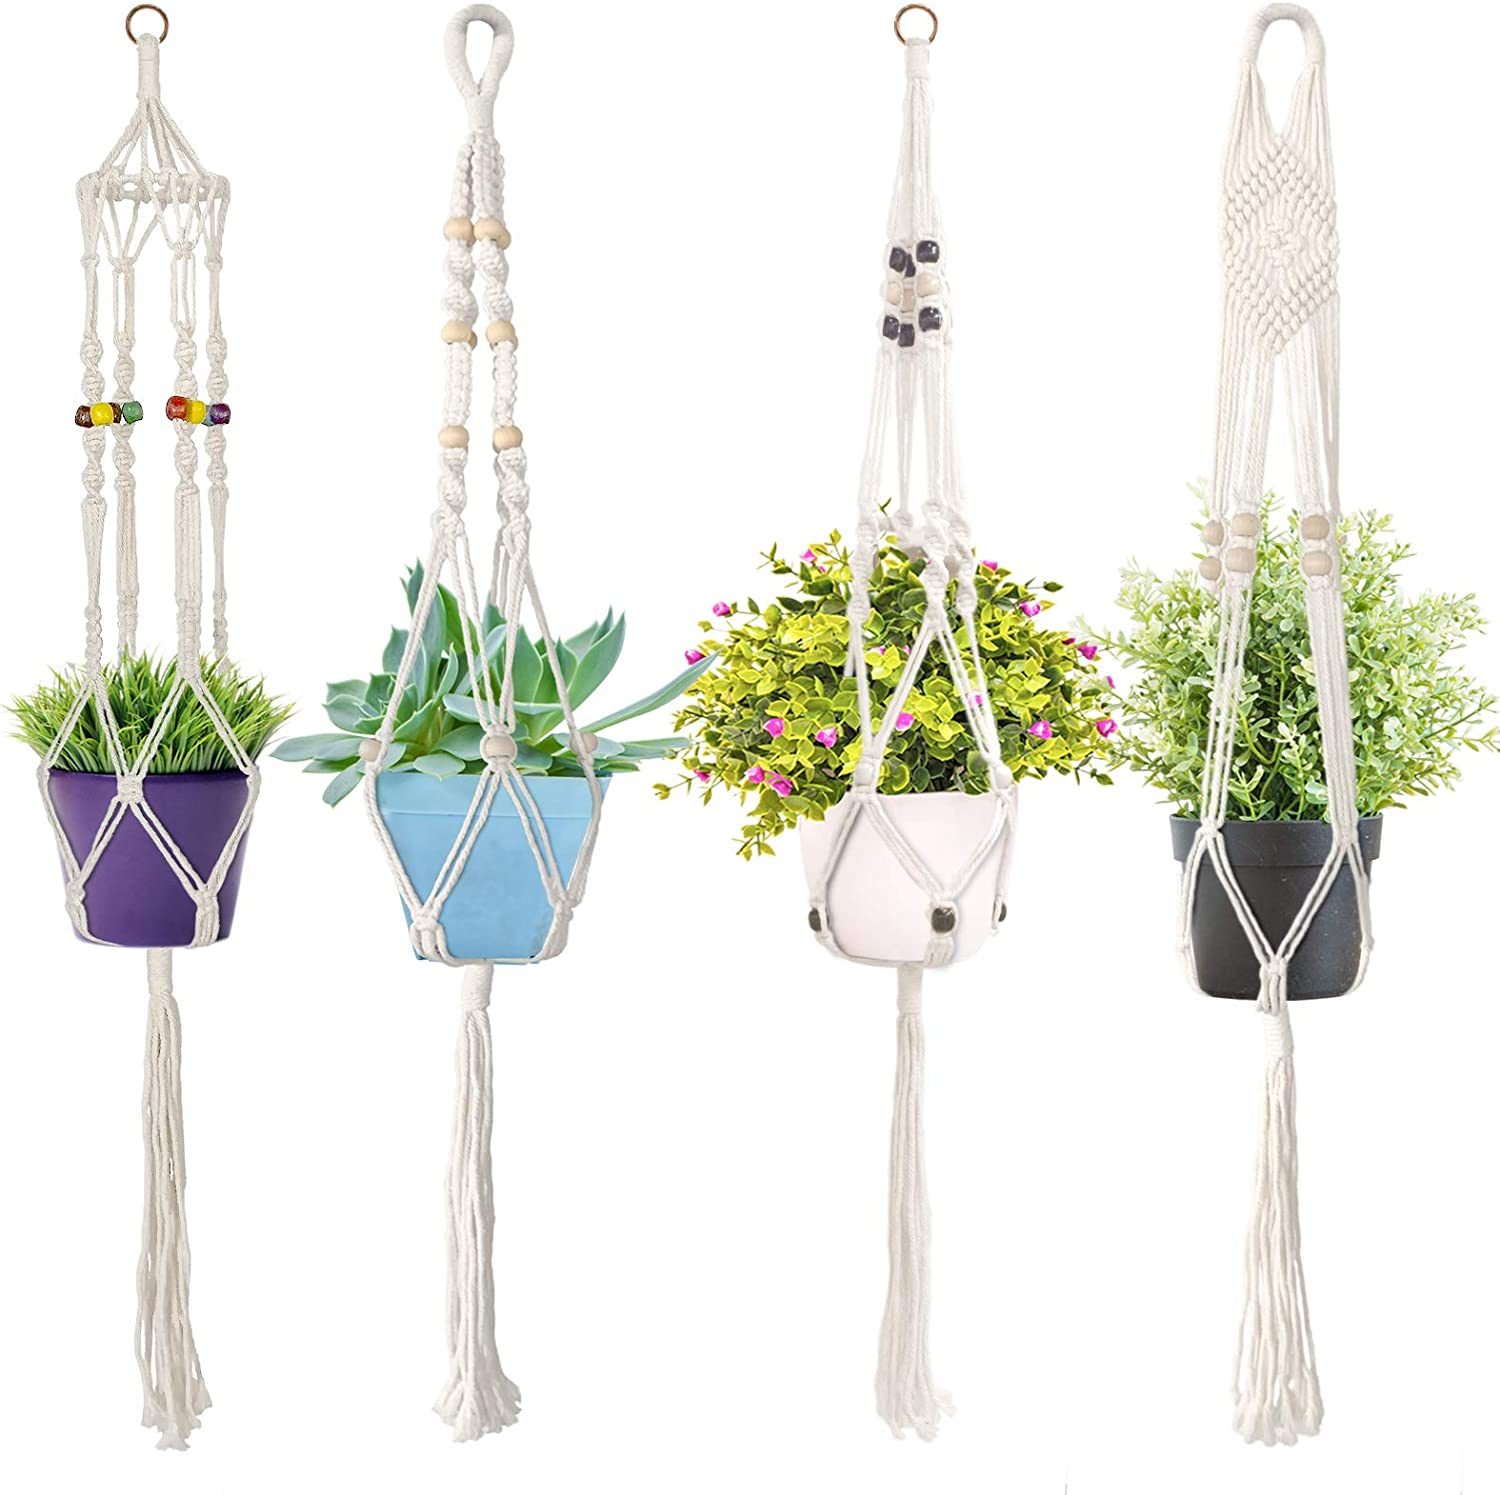 Macrame Courier shipping free Plant Hanger - 4 Pack Indoor H Duty Heavy 2021 spring and summer new Hangers